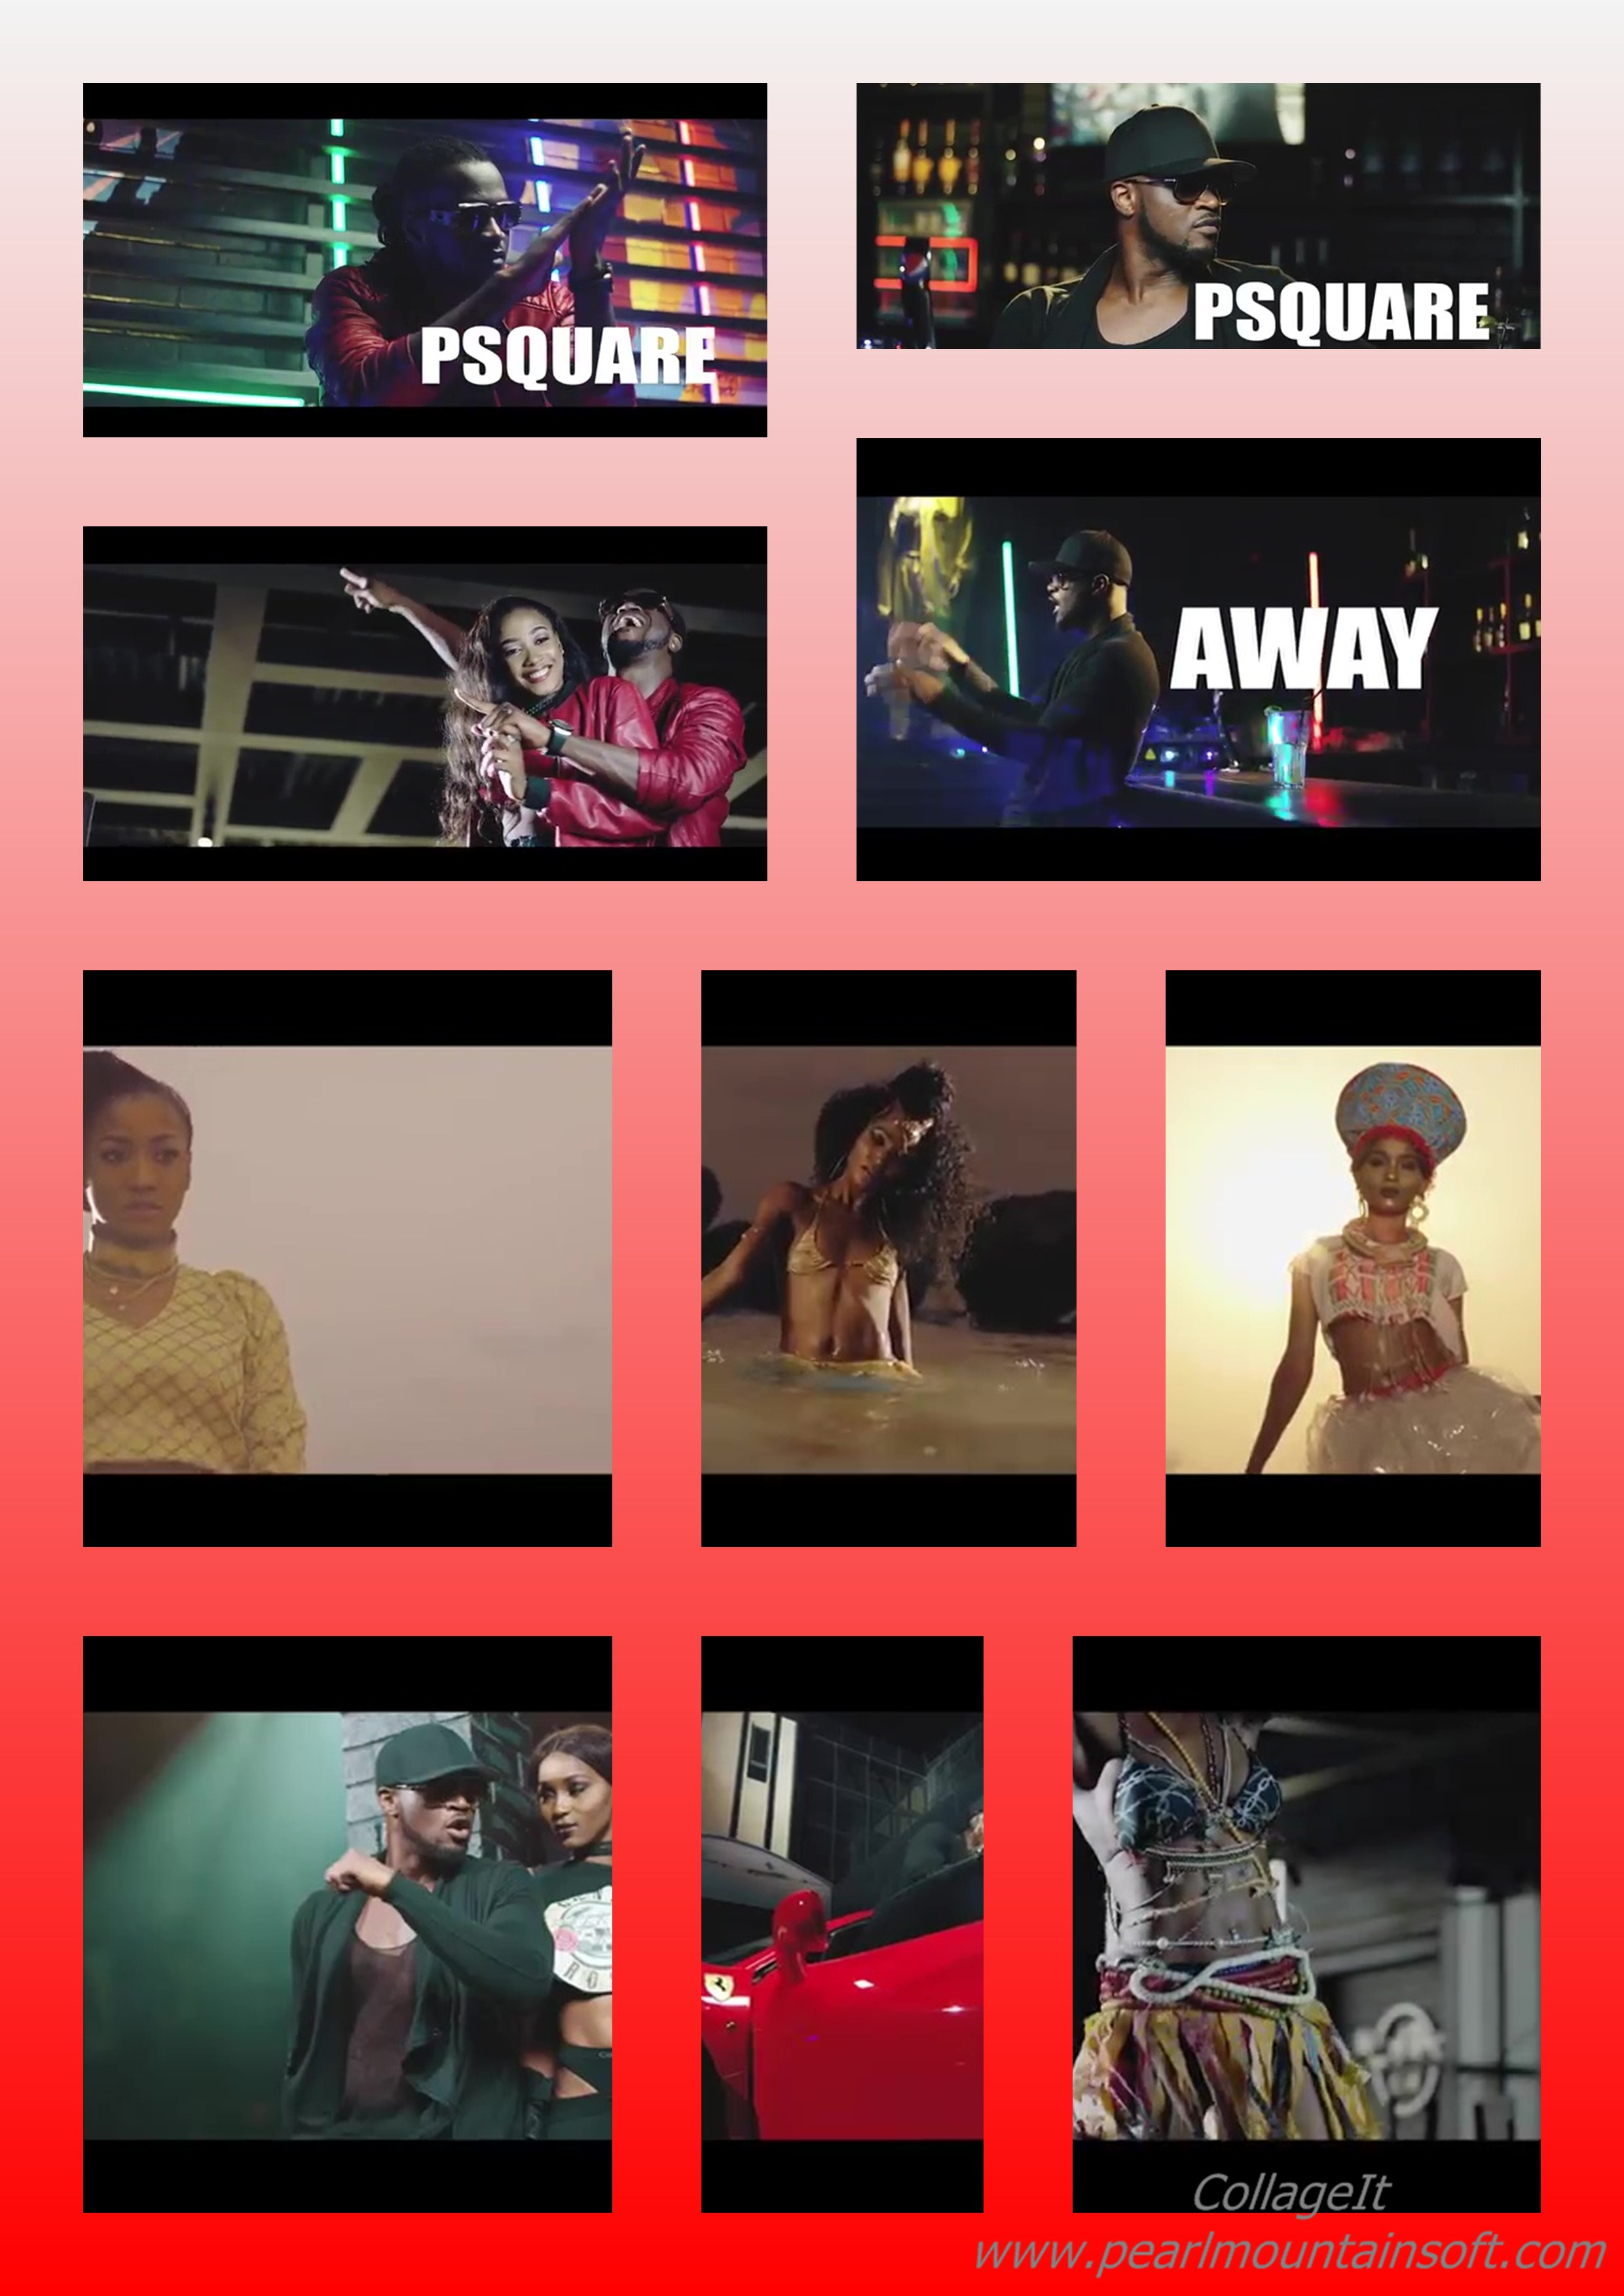 "(+ LYRICS +TRANSLATION+ MEANING) MUSIC REVIEW- AWAY BY PSQUARE ""…AND AWAY THEY WENT!"""